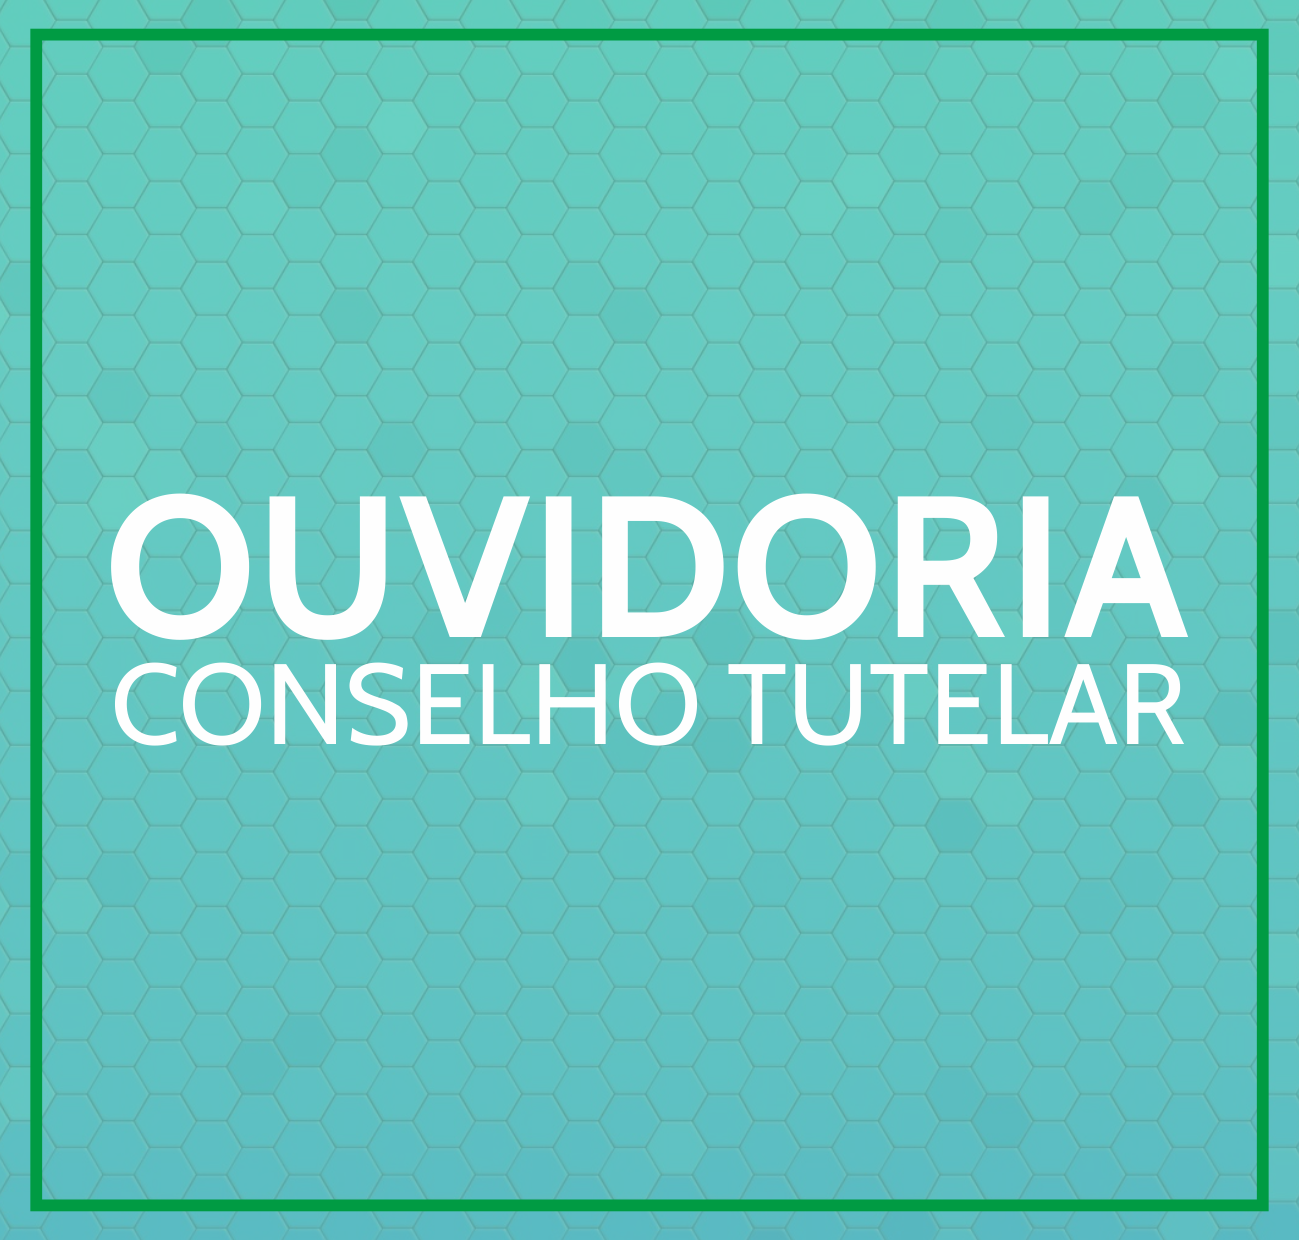 OUVIDORIA CONSELHO TUTELAR